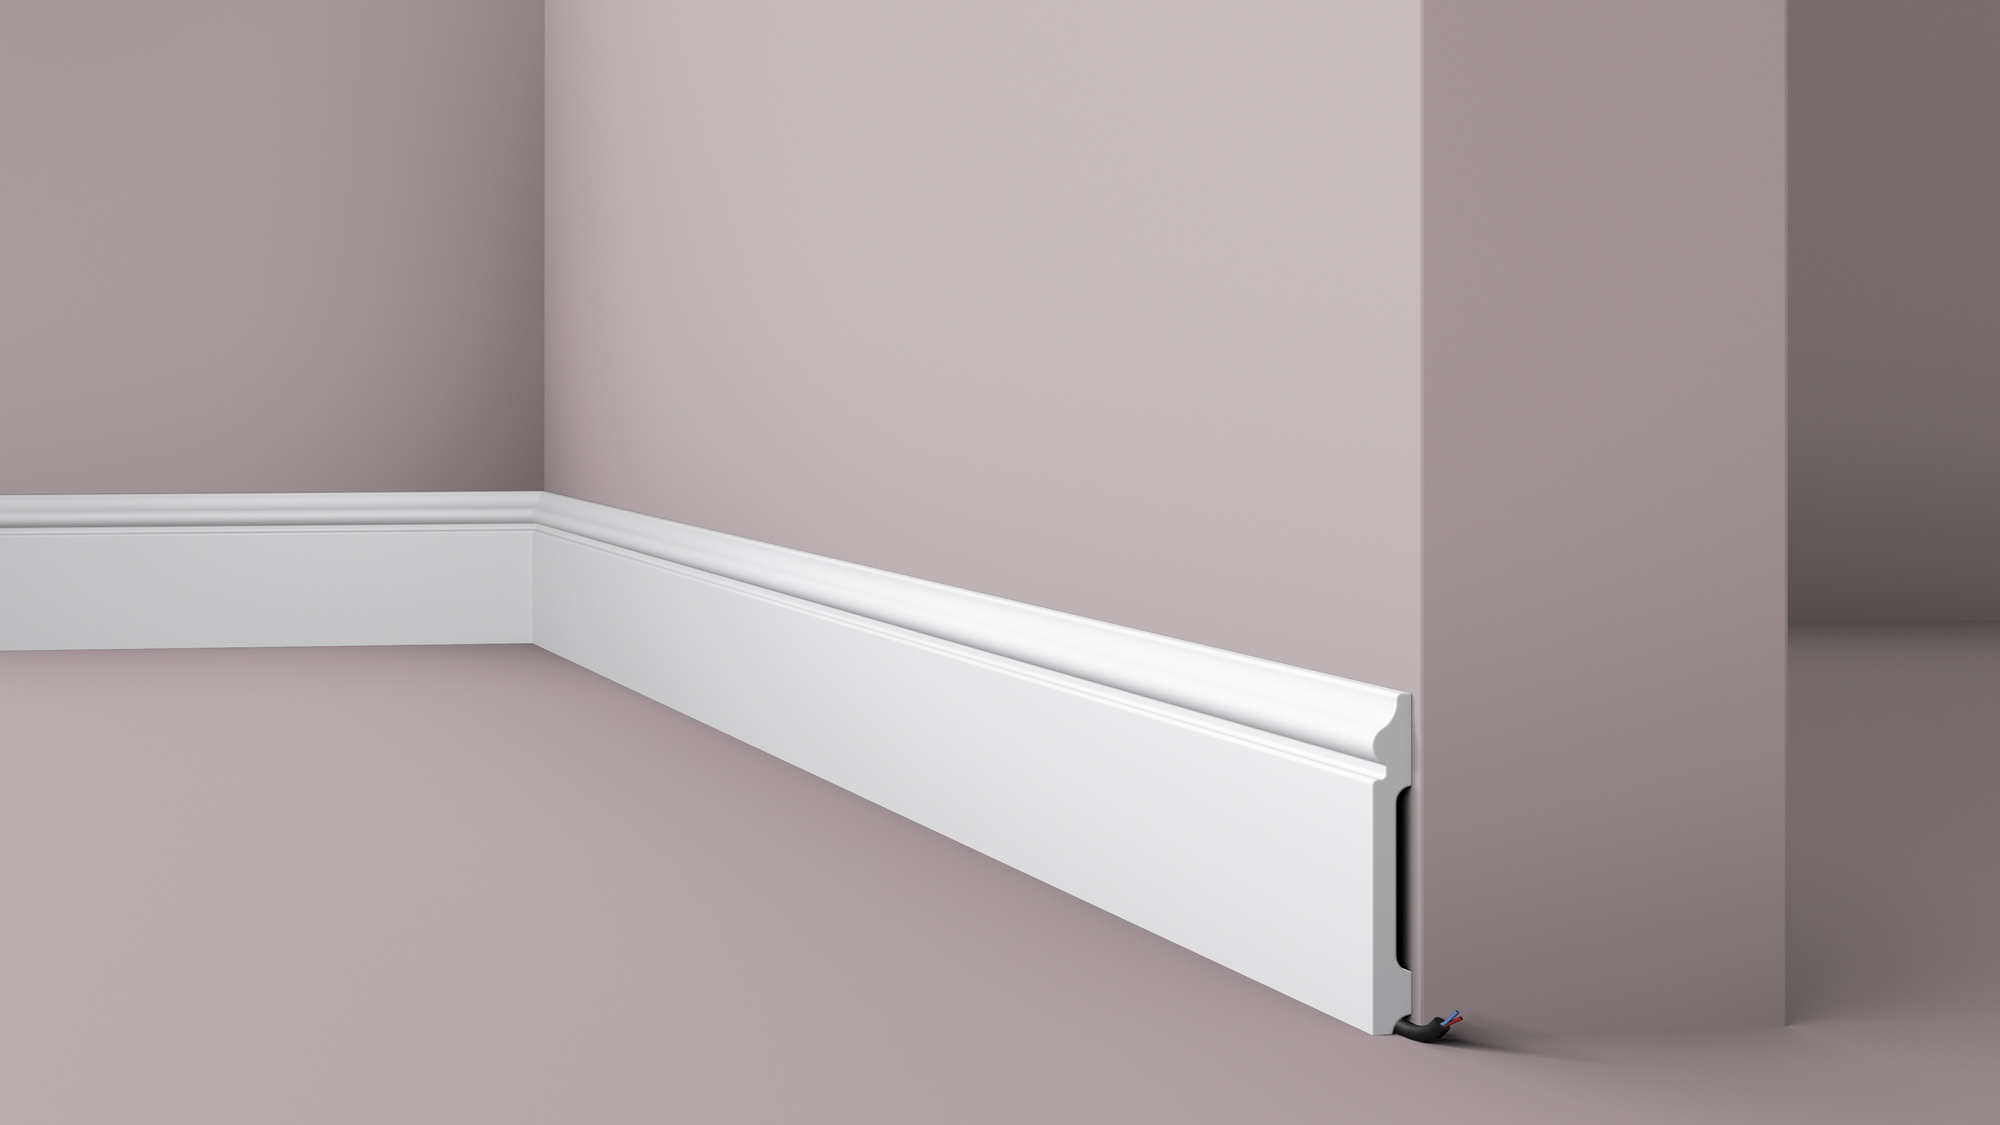 install the skirting board